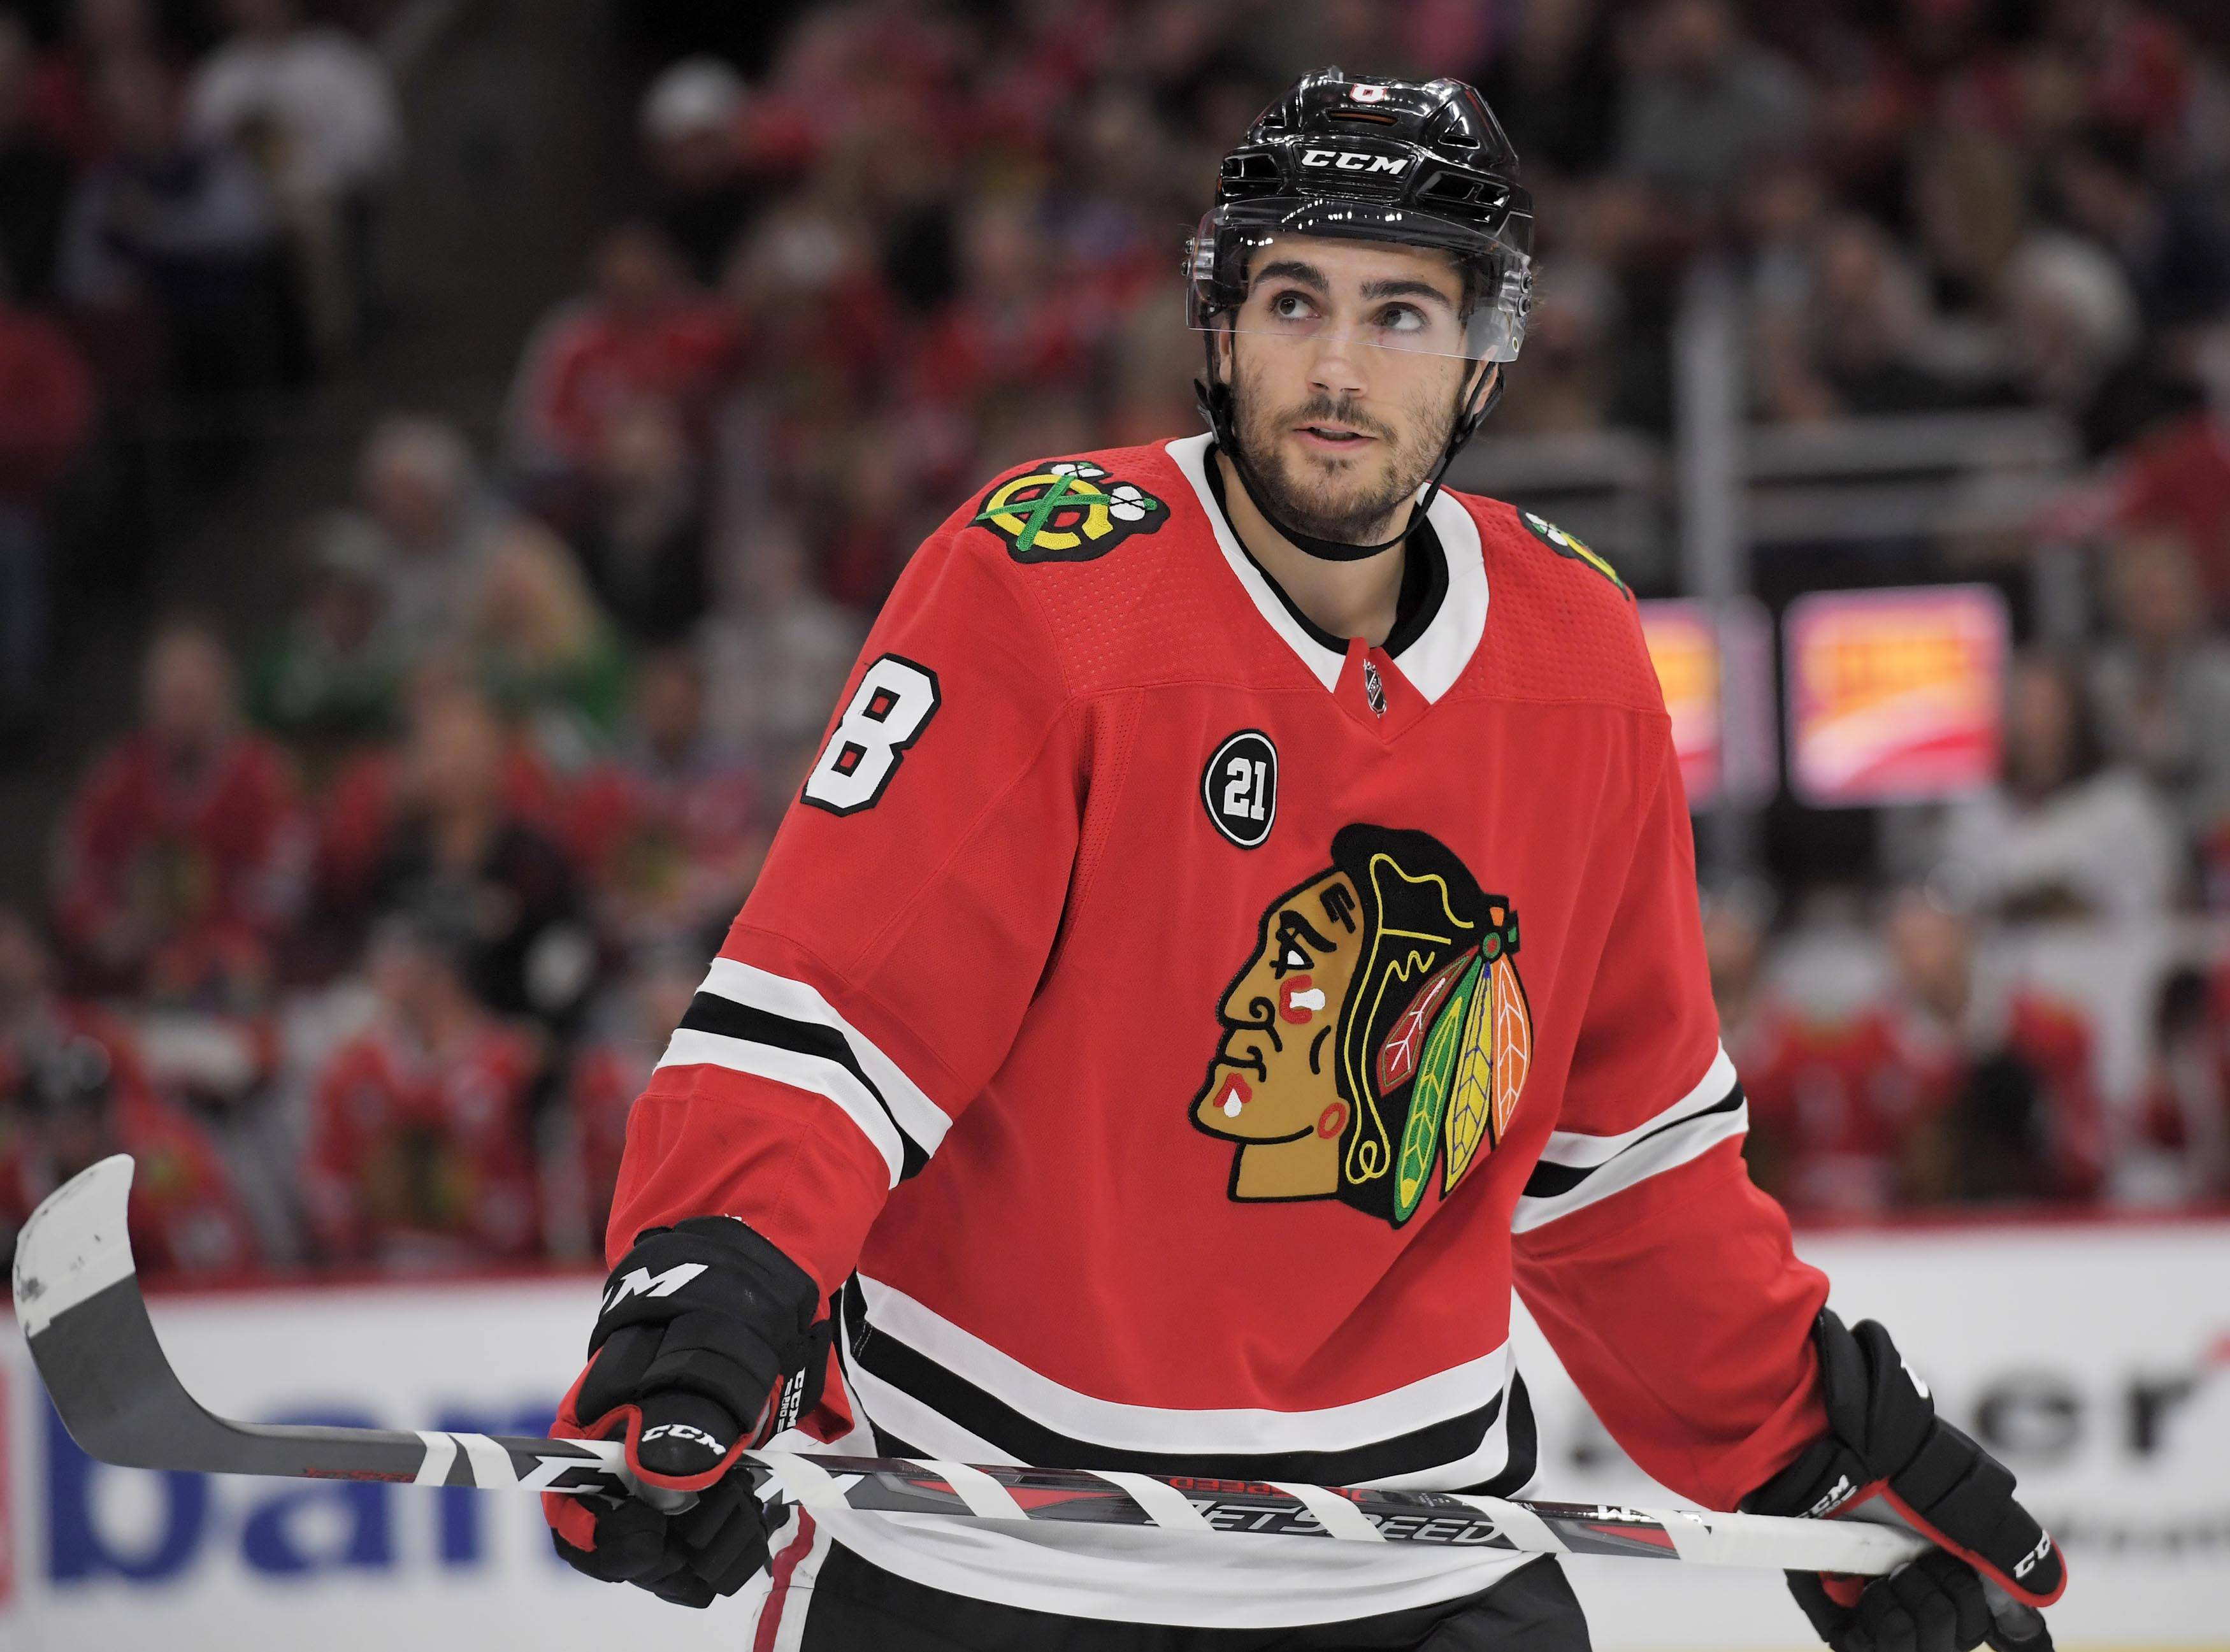 Blackhawks center Nick Schmaltz said he needs to work on shooting the puck more.